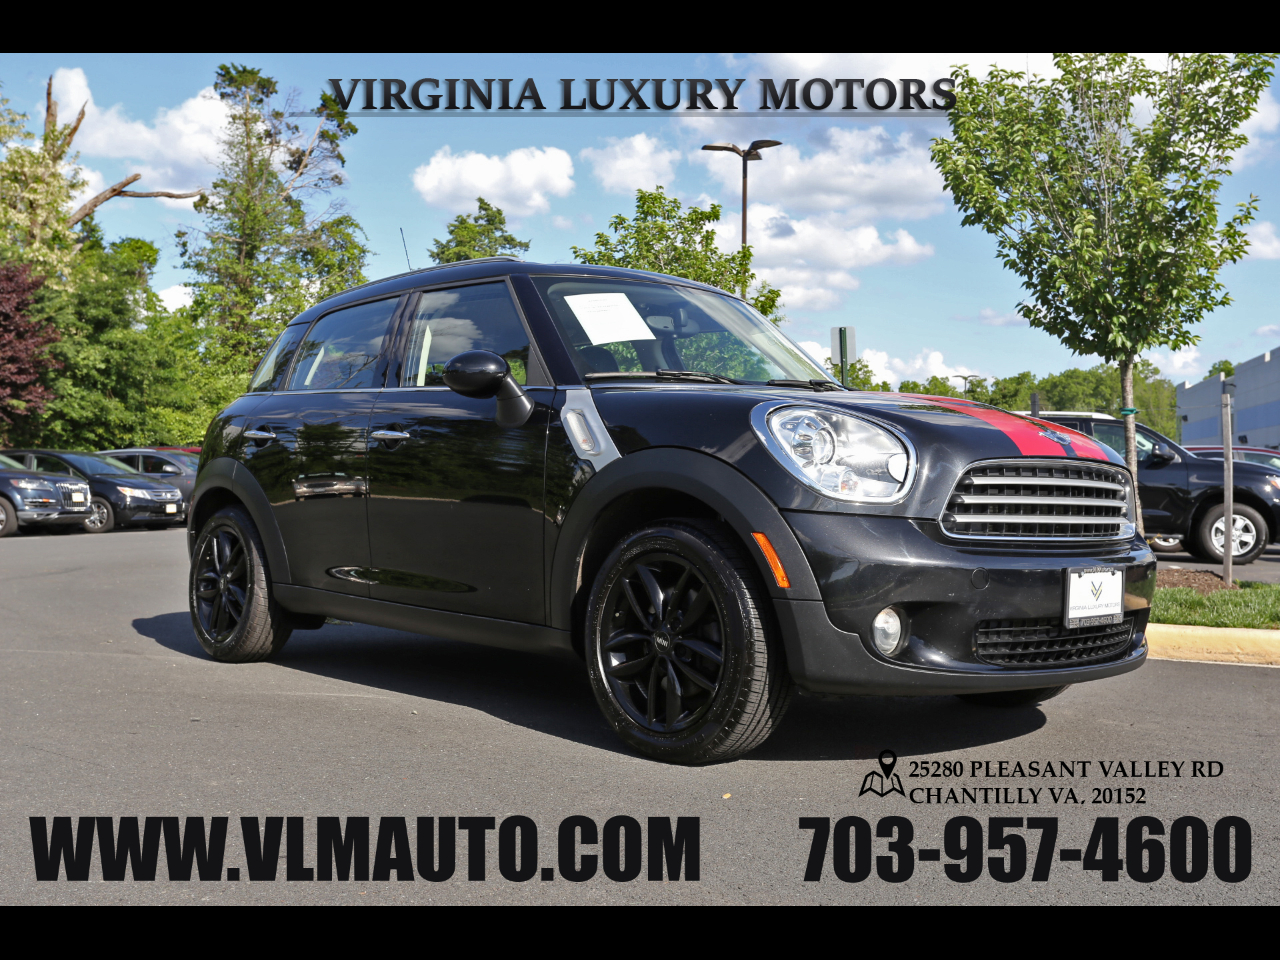 2012 MINI Cooper Countryman 4dr